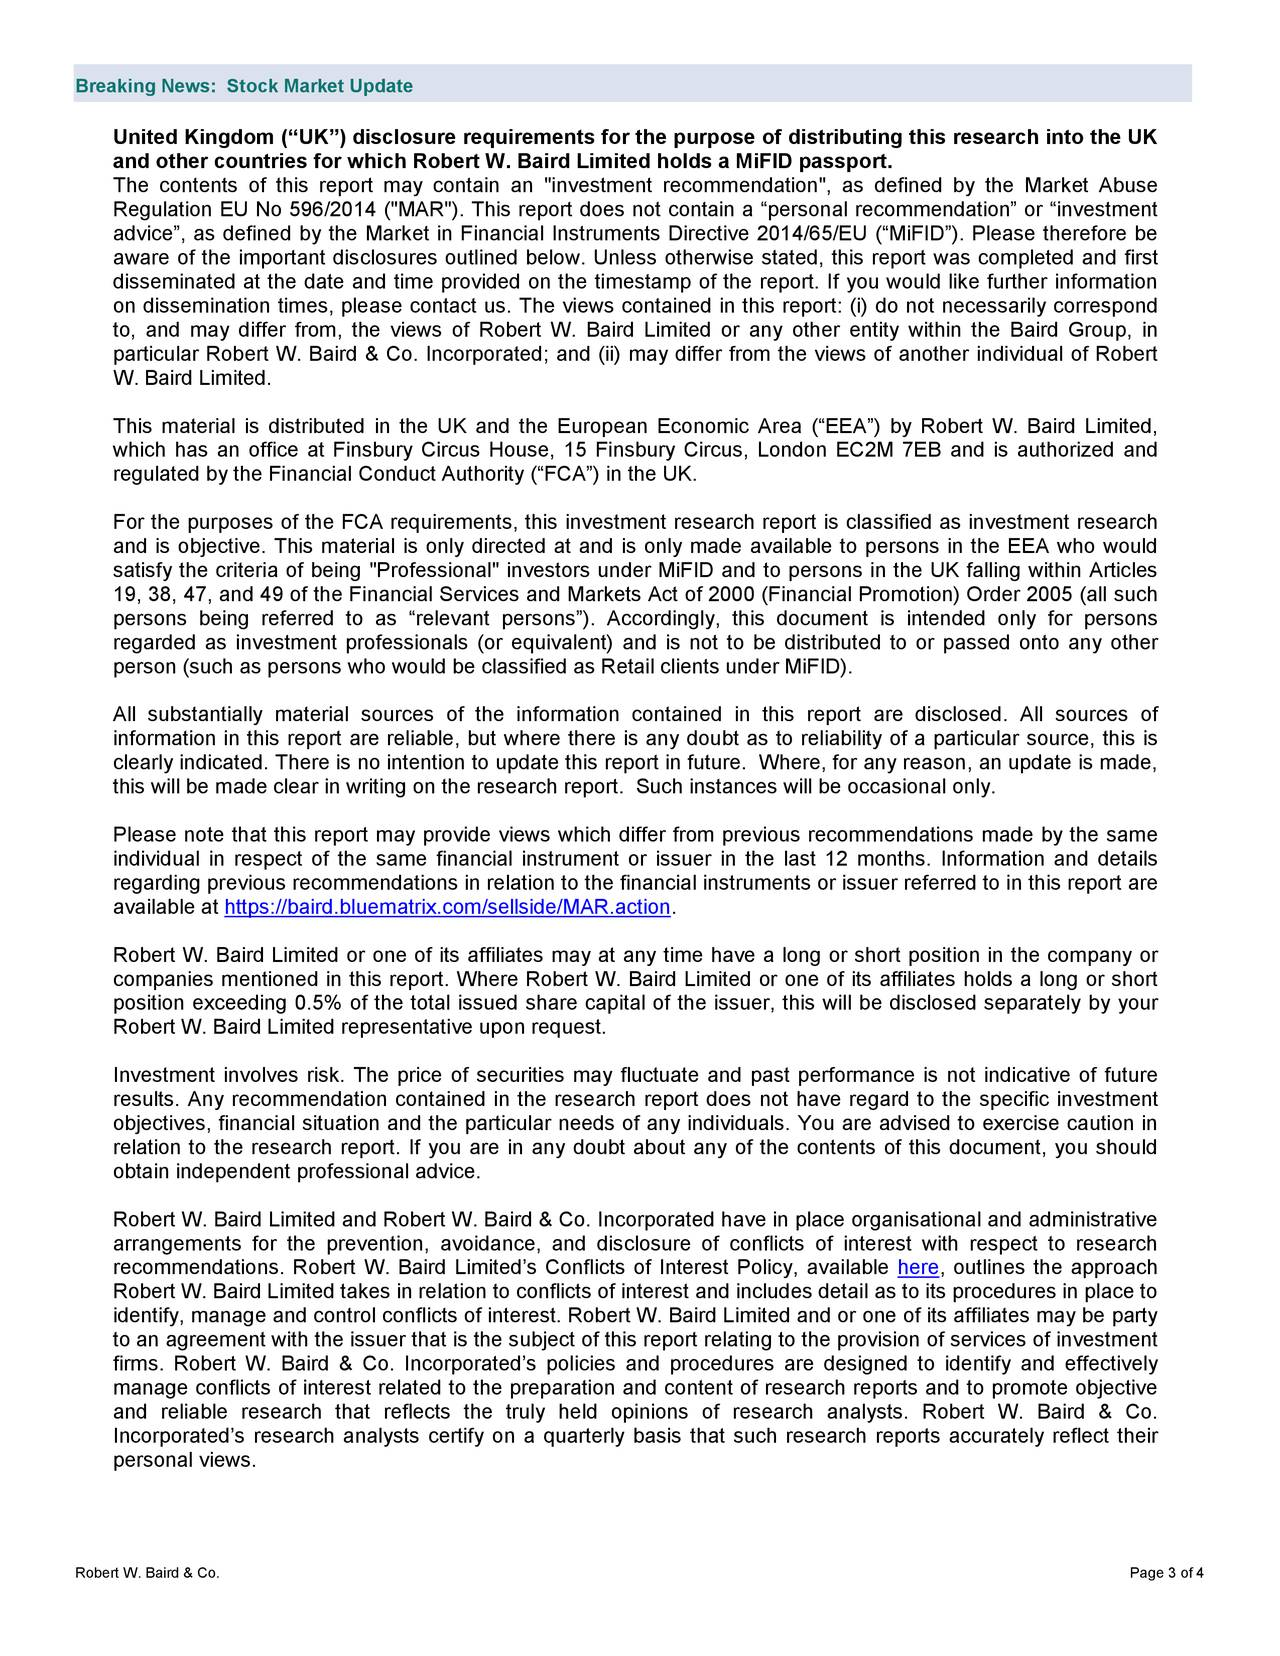 """United Kingdom (""""UK"""") disclosure requirements for the purpose of distributing this research into the UK and other countries for which Robert W. Baird Limited holds a MiFID passport. The contents of this report may contain an """"investment recommendation"""", as defined by the Mar ket Abuse Regulation EU No 596/2014 (""""MAR""""). This report does not contain a """"personal recommendation"""" or """"investment advice"""", as defined by the Market in Financial Instruments Directive 2014/65/EU (""""MiFID""""). Please therefore be aware of the important discl osures outlined below. Unless otherwise stated, this report was completed and first disseminated at the date and time provided on the timestamp of the report. If you would like further information on dissemination times, please contact us. The views contai ned in this report: (i) do not necessarily correspond to, and may differ from, the views of Robert W. Baird Limited or any other entity within the Baird Group, in particular Robert W. Baird & Co. Incorporated; and (ii) may differ from the views of another individual of Robert W. Baird Limited. This material is distributed in the UK and the European Economic Area (""""EEA"""") by Robert W. Baird Limited, which has an office at Finsbury Circus House, 15 Finsbury Circus, London EC2M 7EB and is authorized and regulated by the Financial Conduct Authority (""""FCA"""") in the UK. For the purposes of the FCA requirements, this investment research report is classified as investment research and is objective. This material is only directed at and is only made available to pers ons in the EEA who would satisfy the criteria of being """"Professional"""" investors under MiFID and to persons in the UK falling within Articles 19, 38, 47, and 49 of the Financial Services and Markets Act of 2000 (Financial Promotion) Order 2005 (all such persons being referred to as """"relevant persons""""). Accordingly, this document is intended only for persons regarded as investment professionals (or equivalent) and is not to be distributed to"""